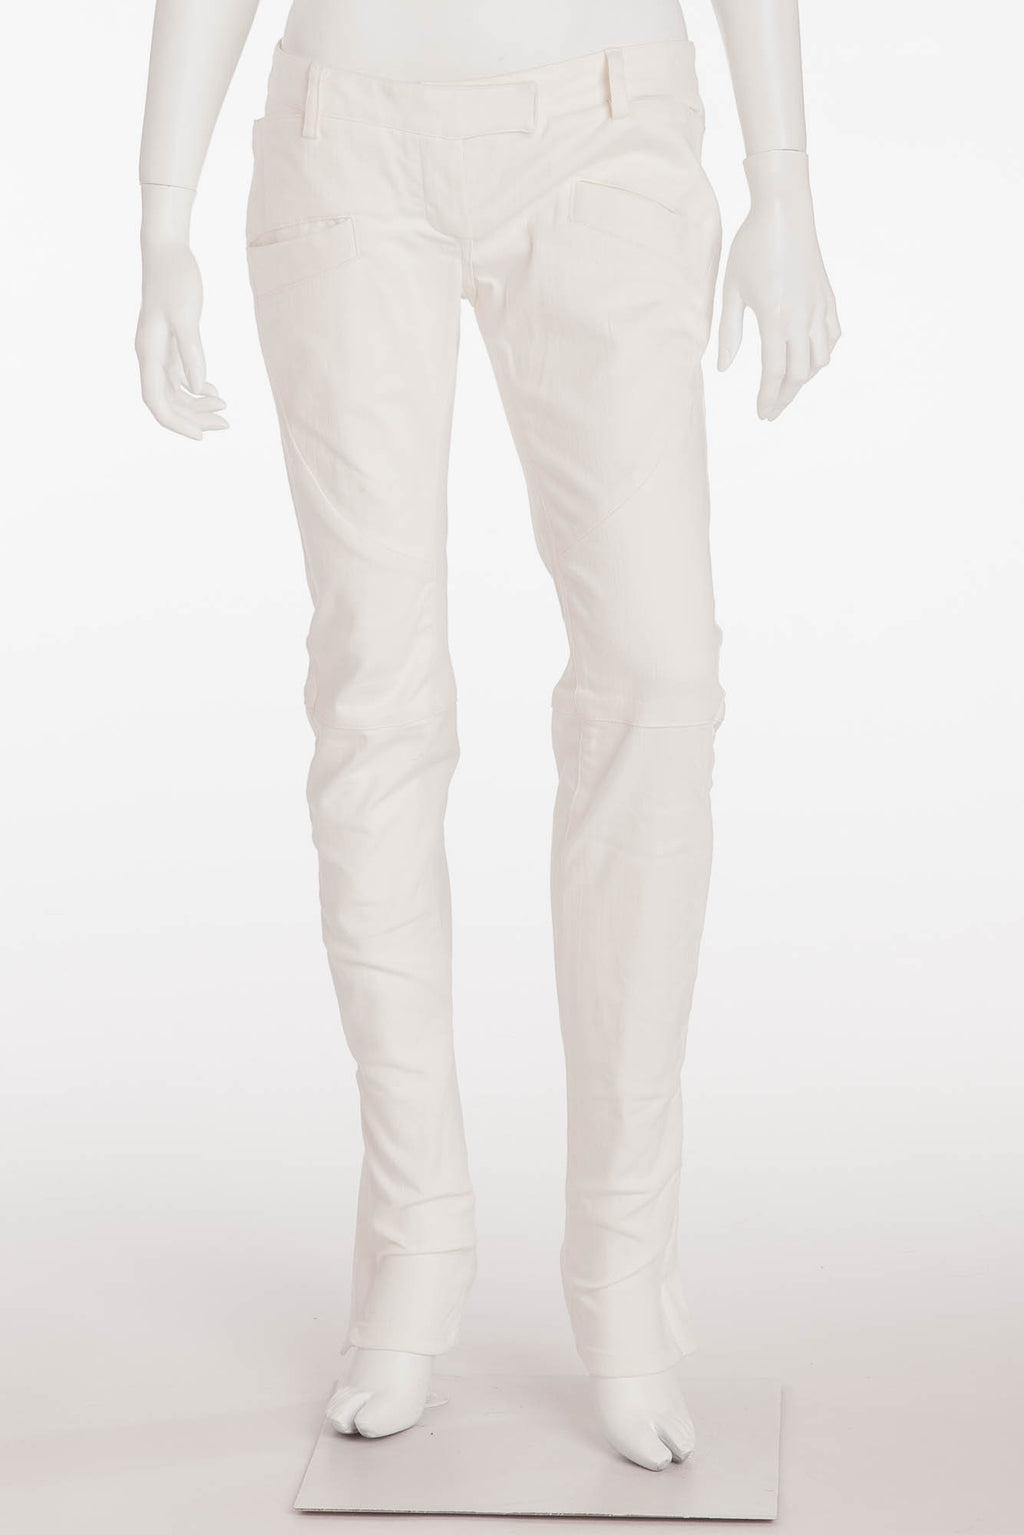 Balmain - New with Tags White Denim Low Rise Skinny Jeans - FR 40